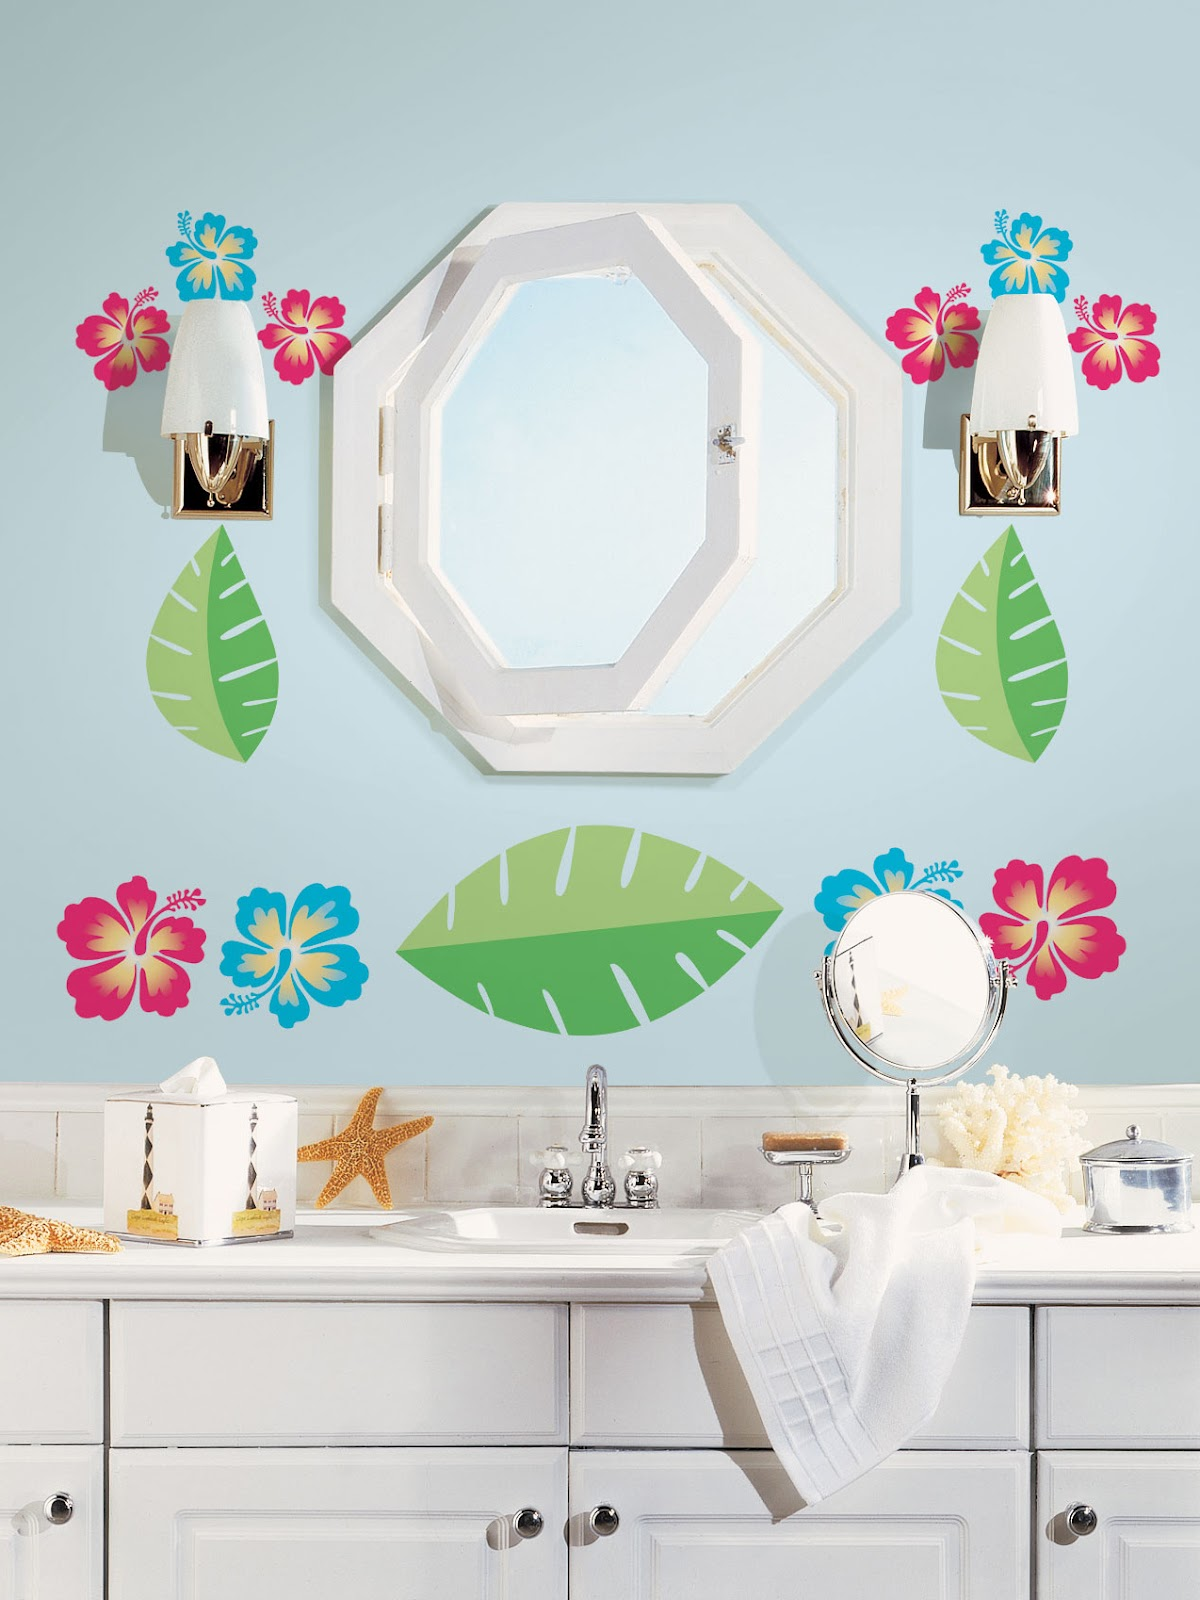 Outstanding Teen Girls Bathroom Decorating Ideas 1200 x 1600 · 216 kB · jpeg